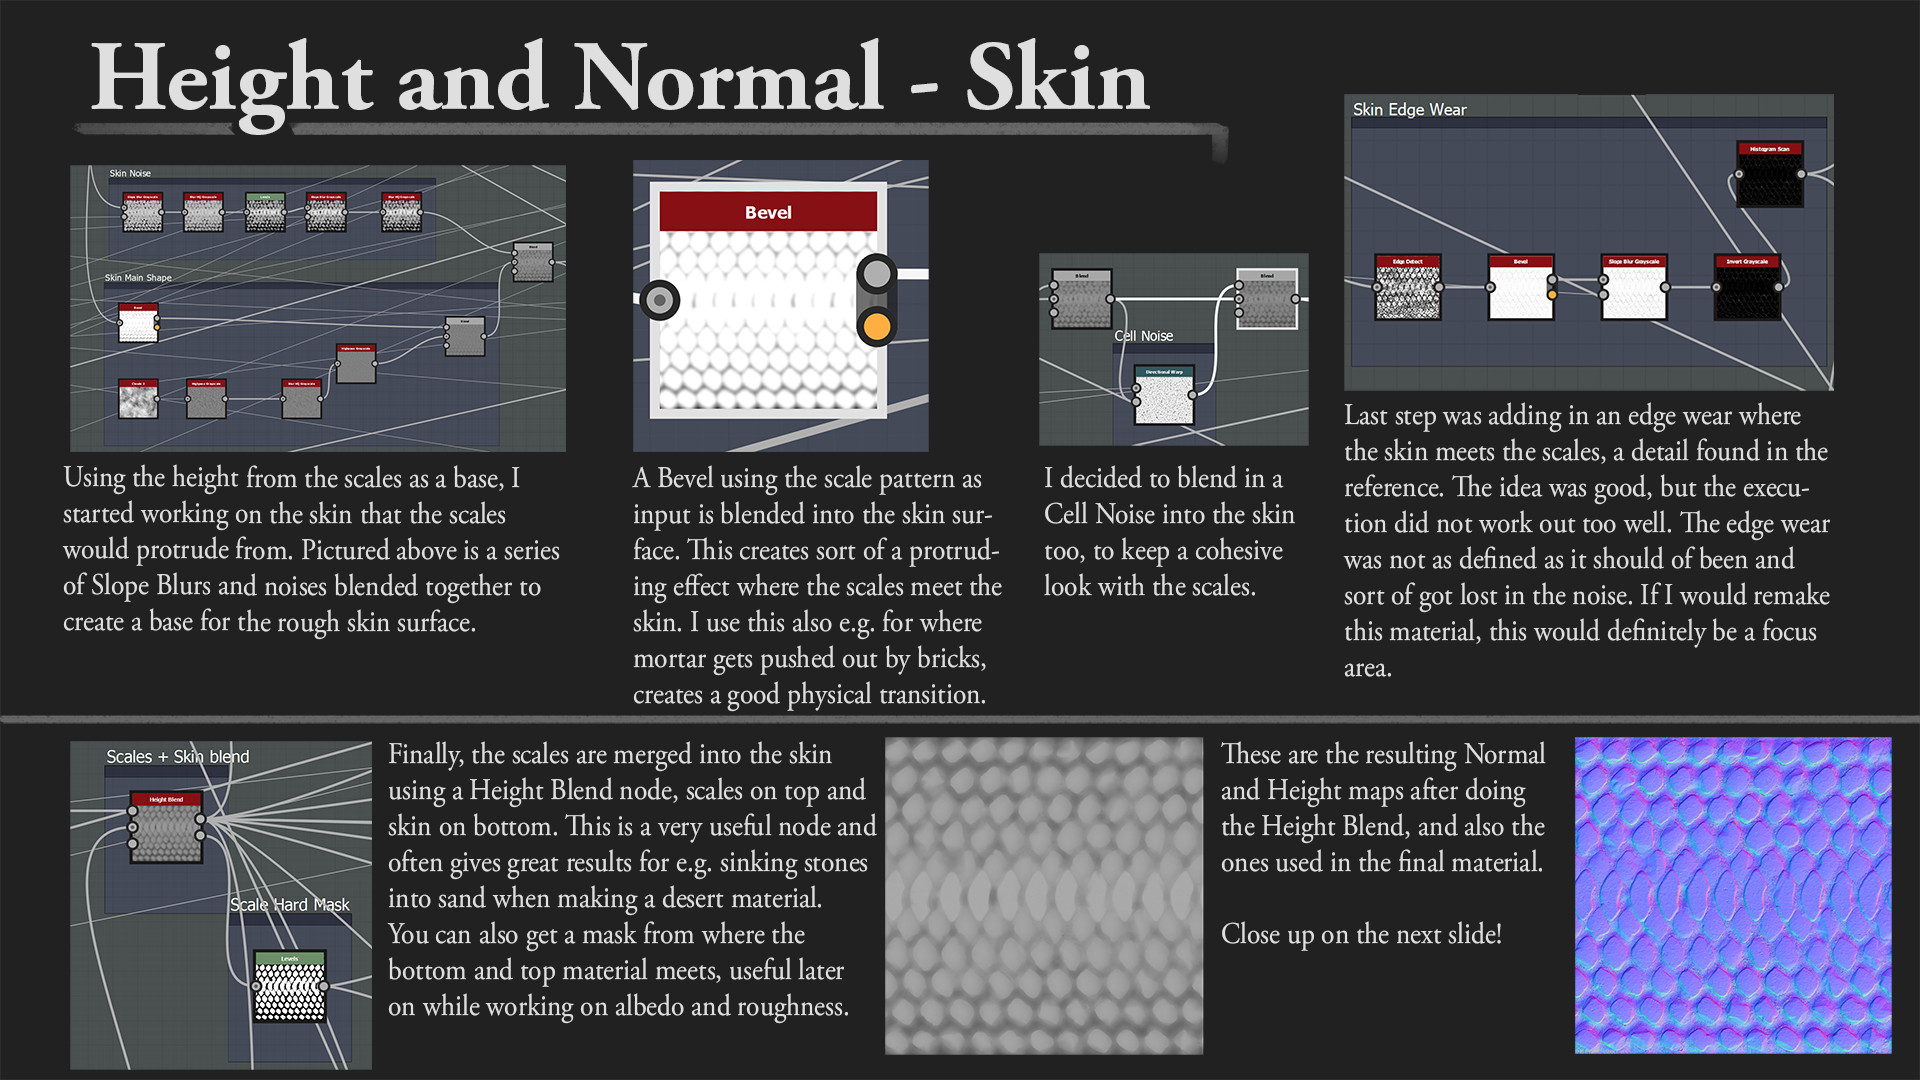 Olle norling height and normal skin smallersize